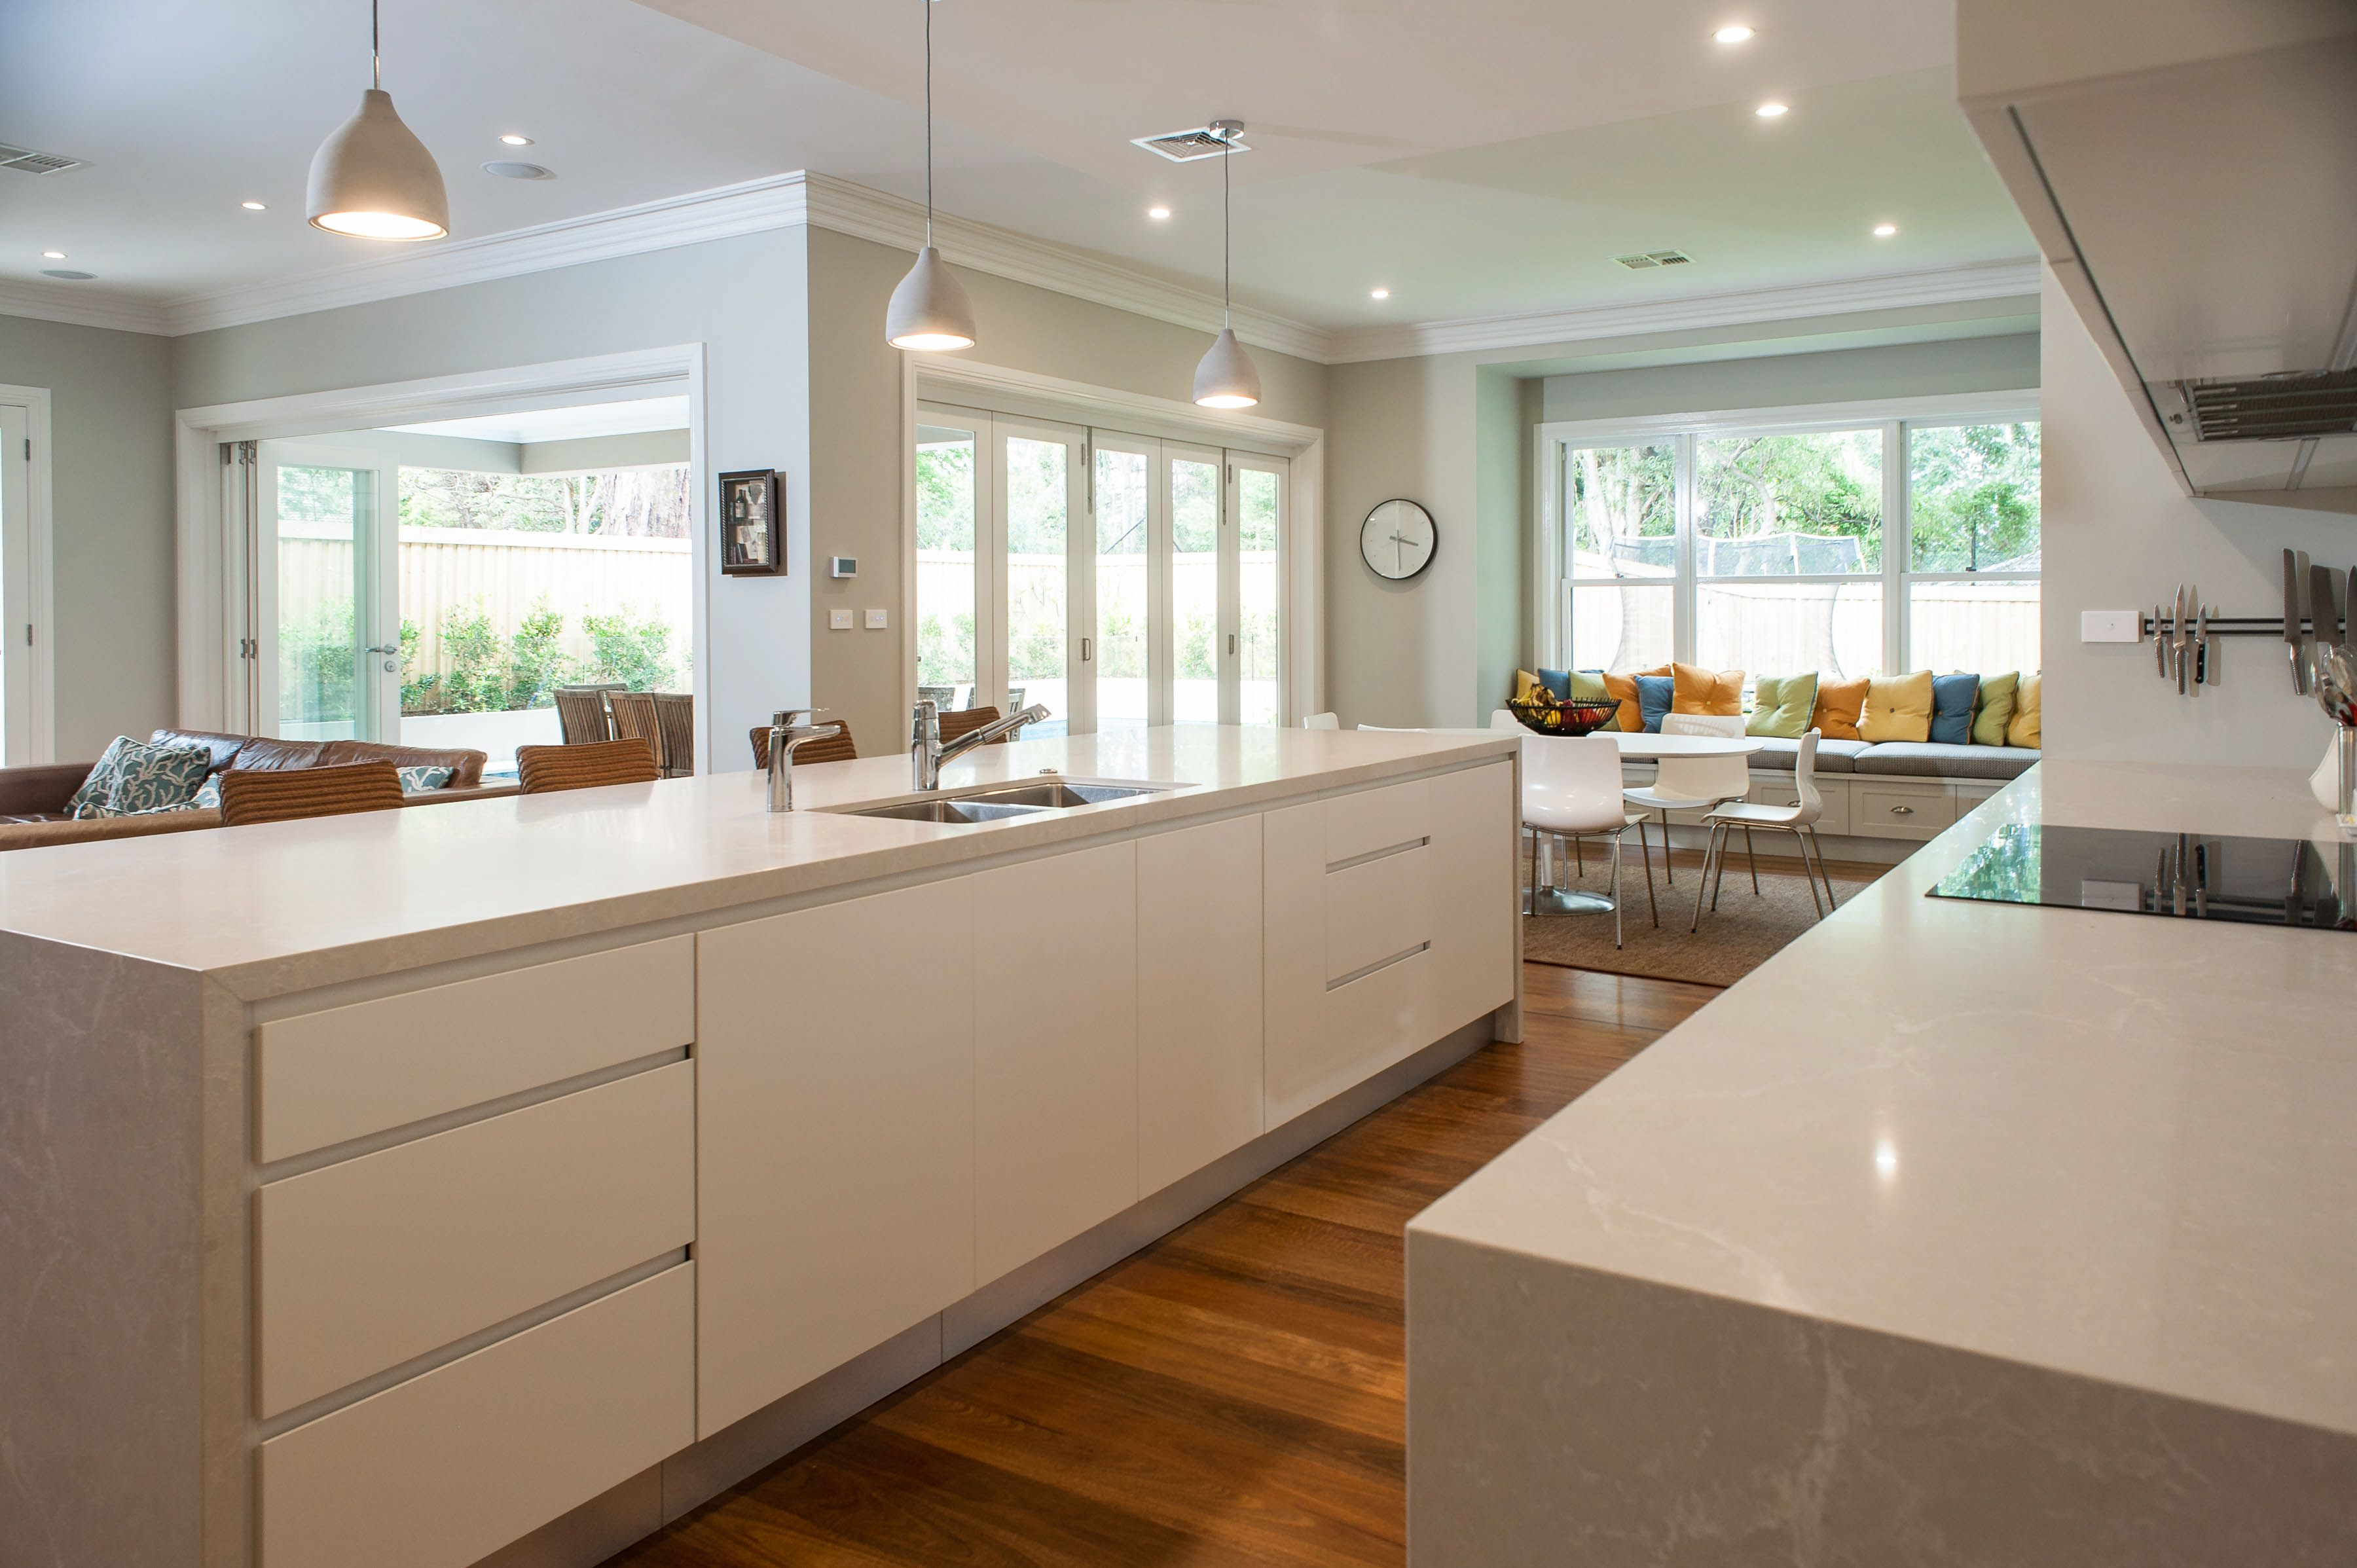 Loving The Fact There Is No Handles In This Kitchen And Only Shark Nose Finger Pulls Makes The Kitchen Look So Sleek And Modern Updated Kitchen Kitchen Design